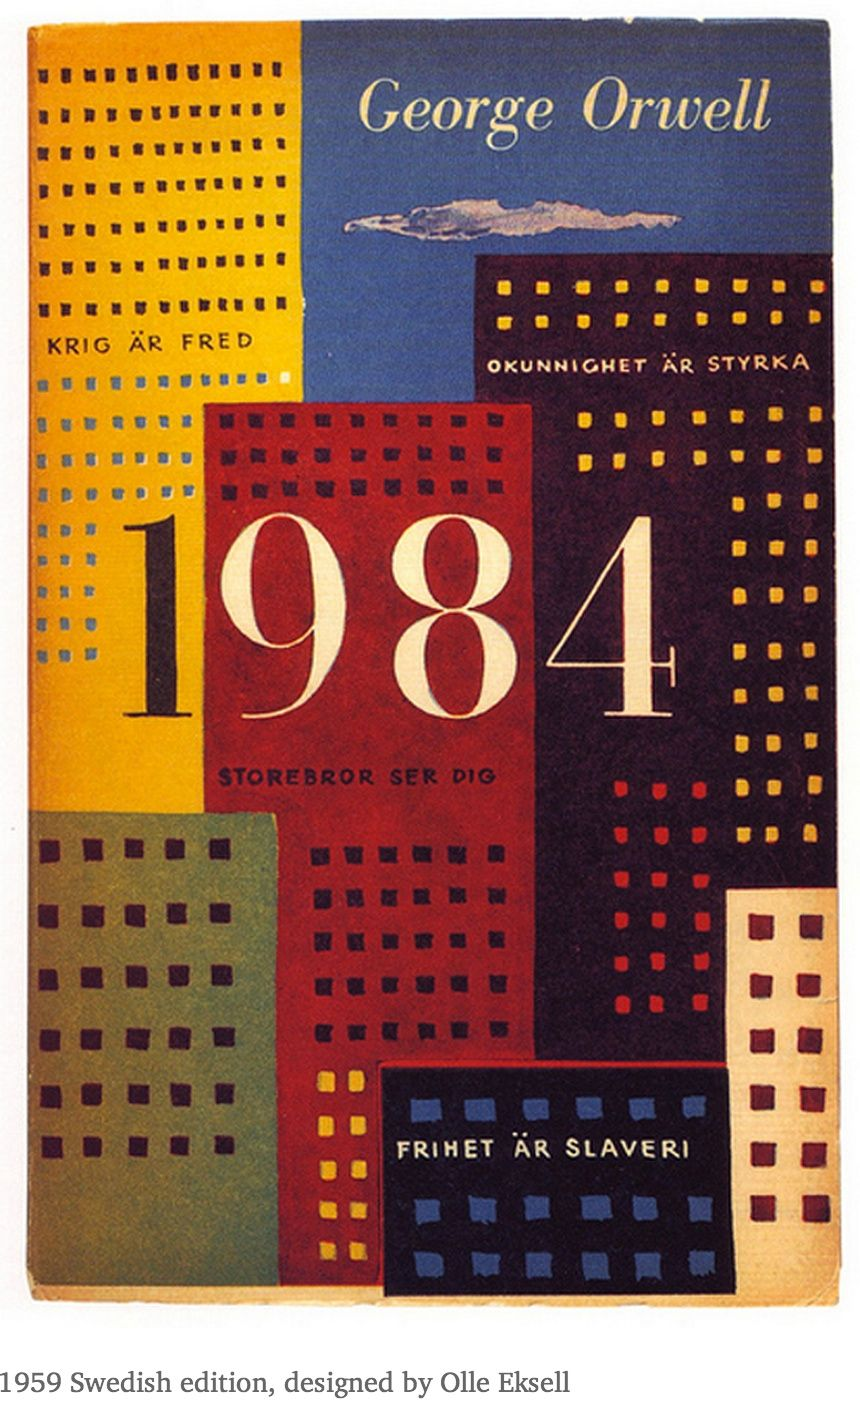 Cover design for a 1959 Swedish edition of the novel 1984, by George Orwell (published 1949).